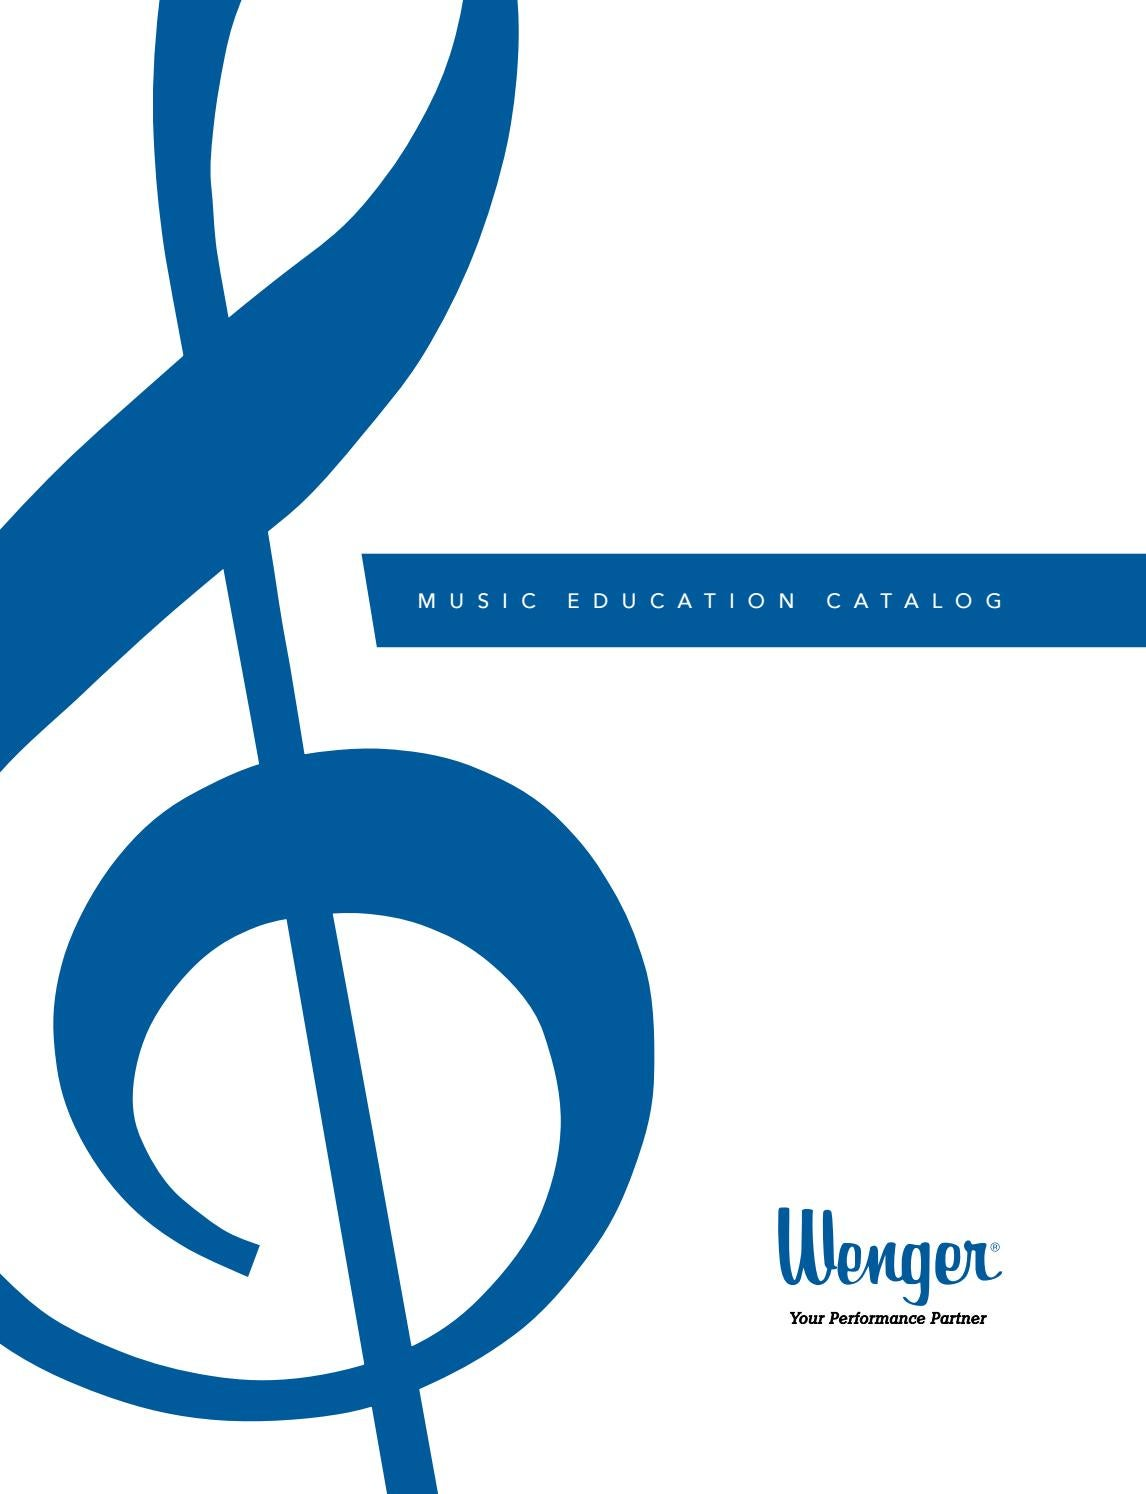 Wenger Music Education Catalog By